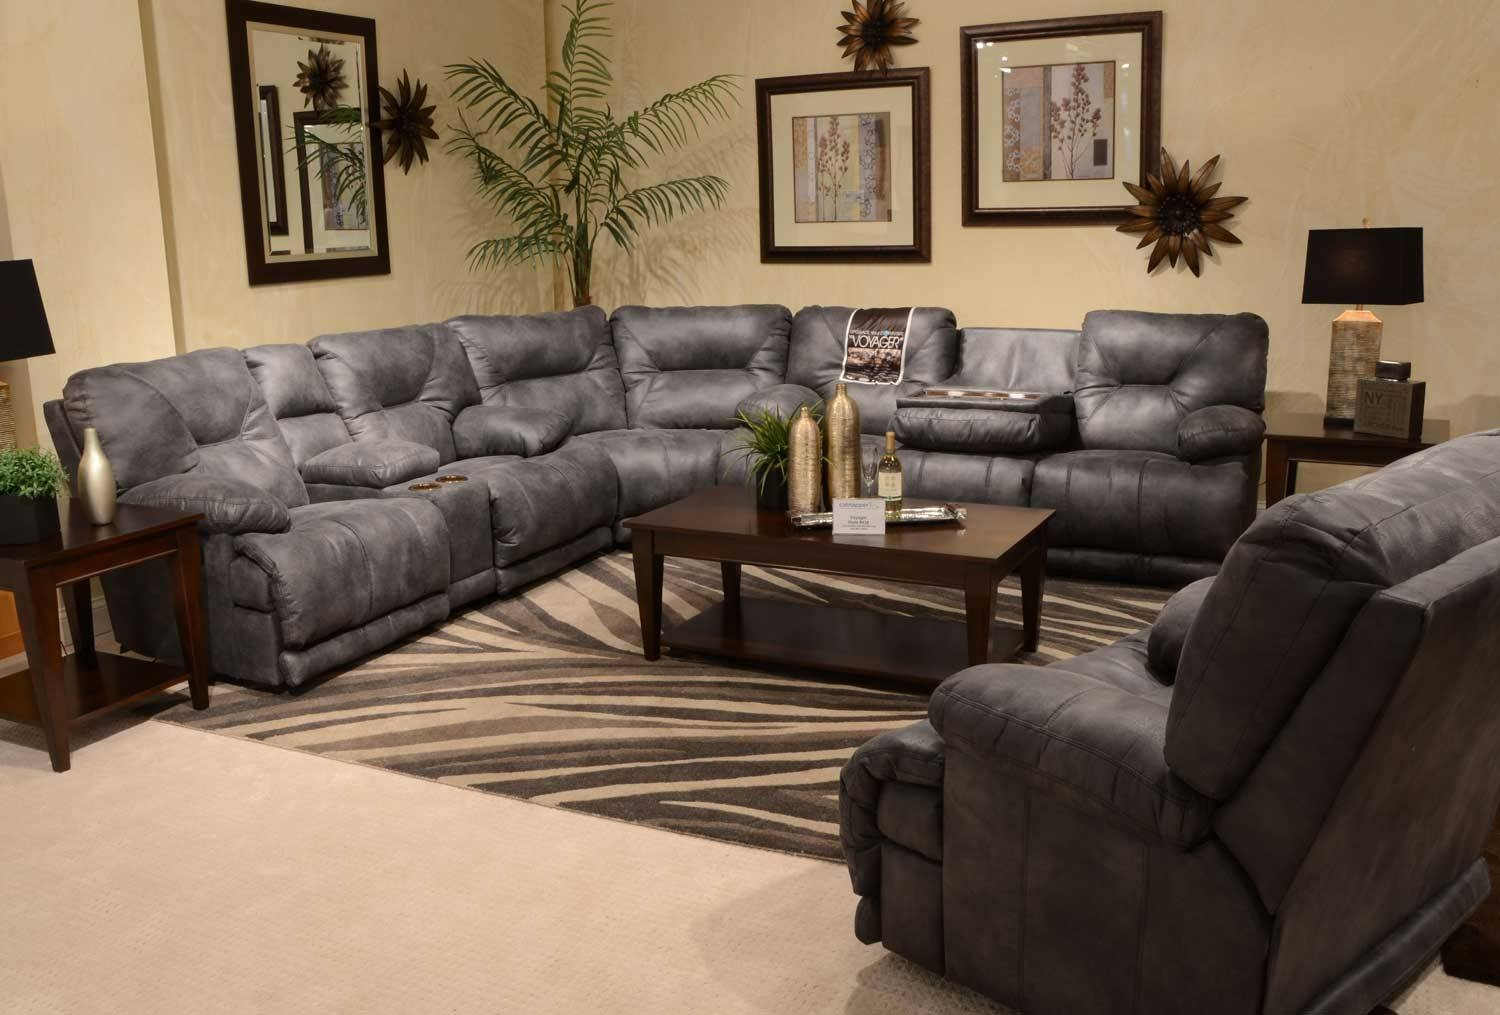 Catnapper Voyager Sectional With Lay Flat 3 Recliner Sofa, Console With Regard To Catnapper Recliner Sofas (View 5 of 15)